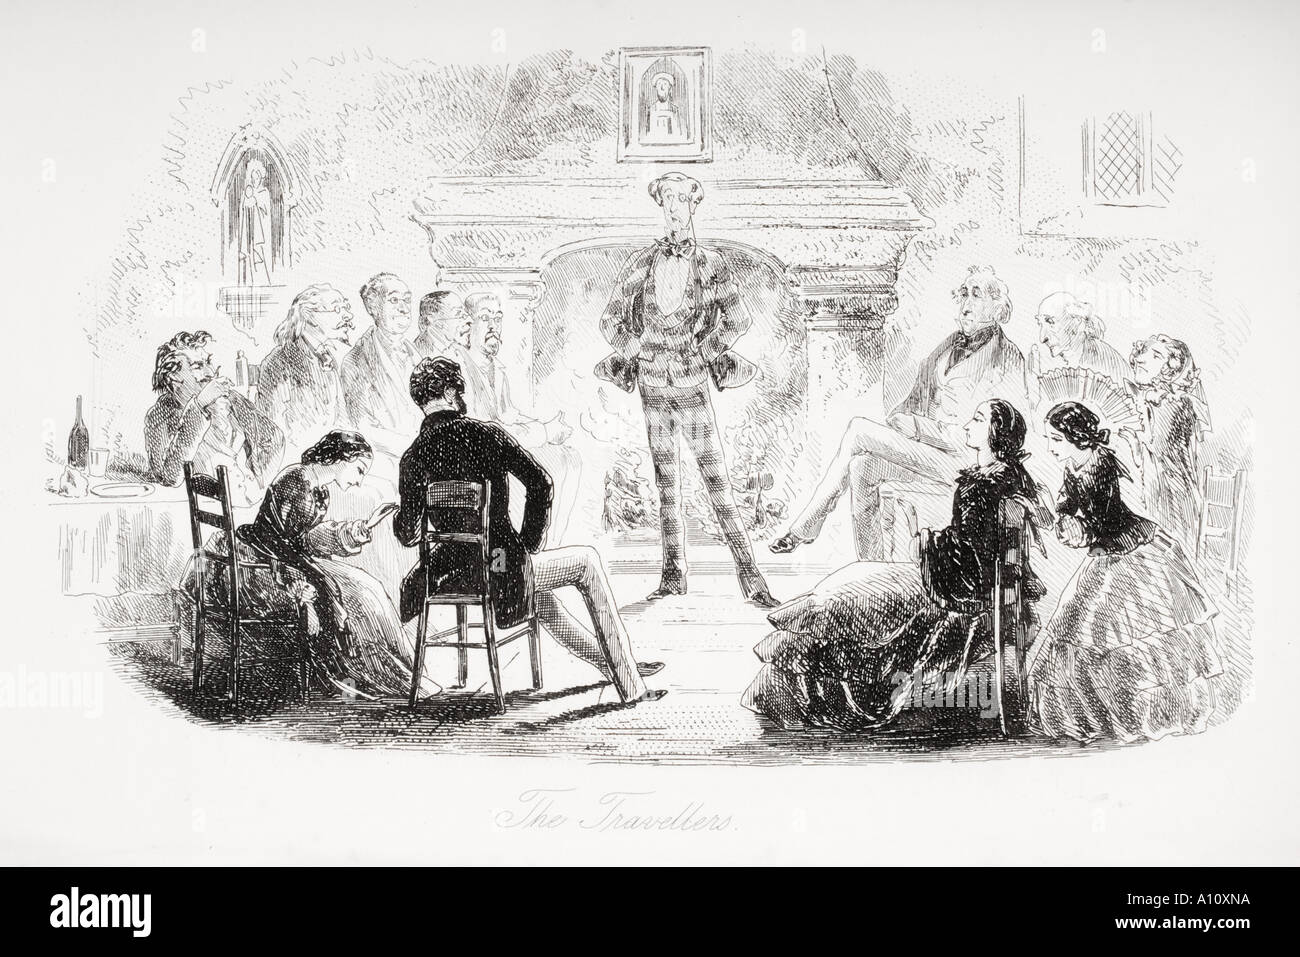 the travellers illustration from the charles dickens novel david stock photo the travellers illustration from the charles dickens novel david copperfield by h k browne known as phiz